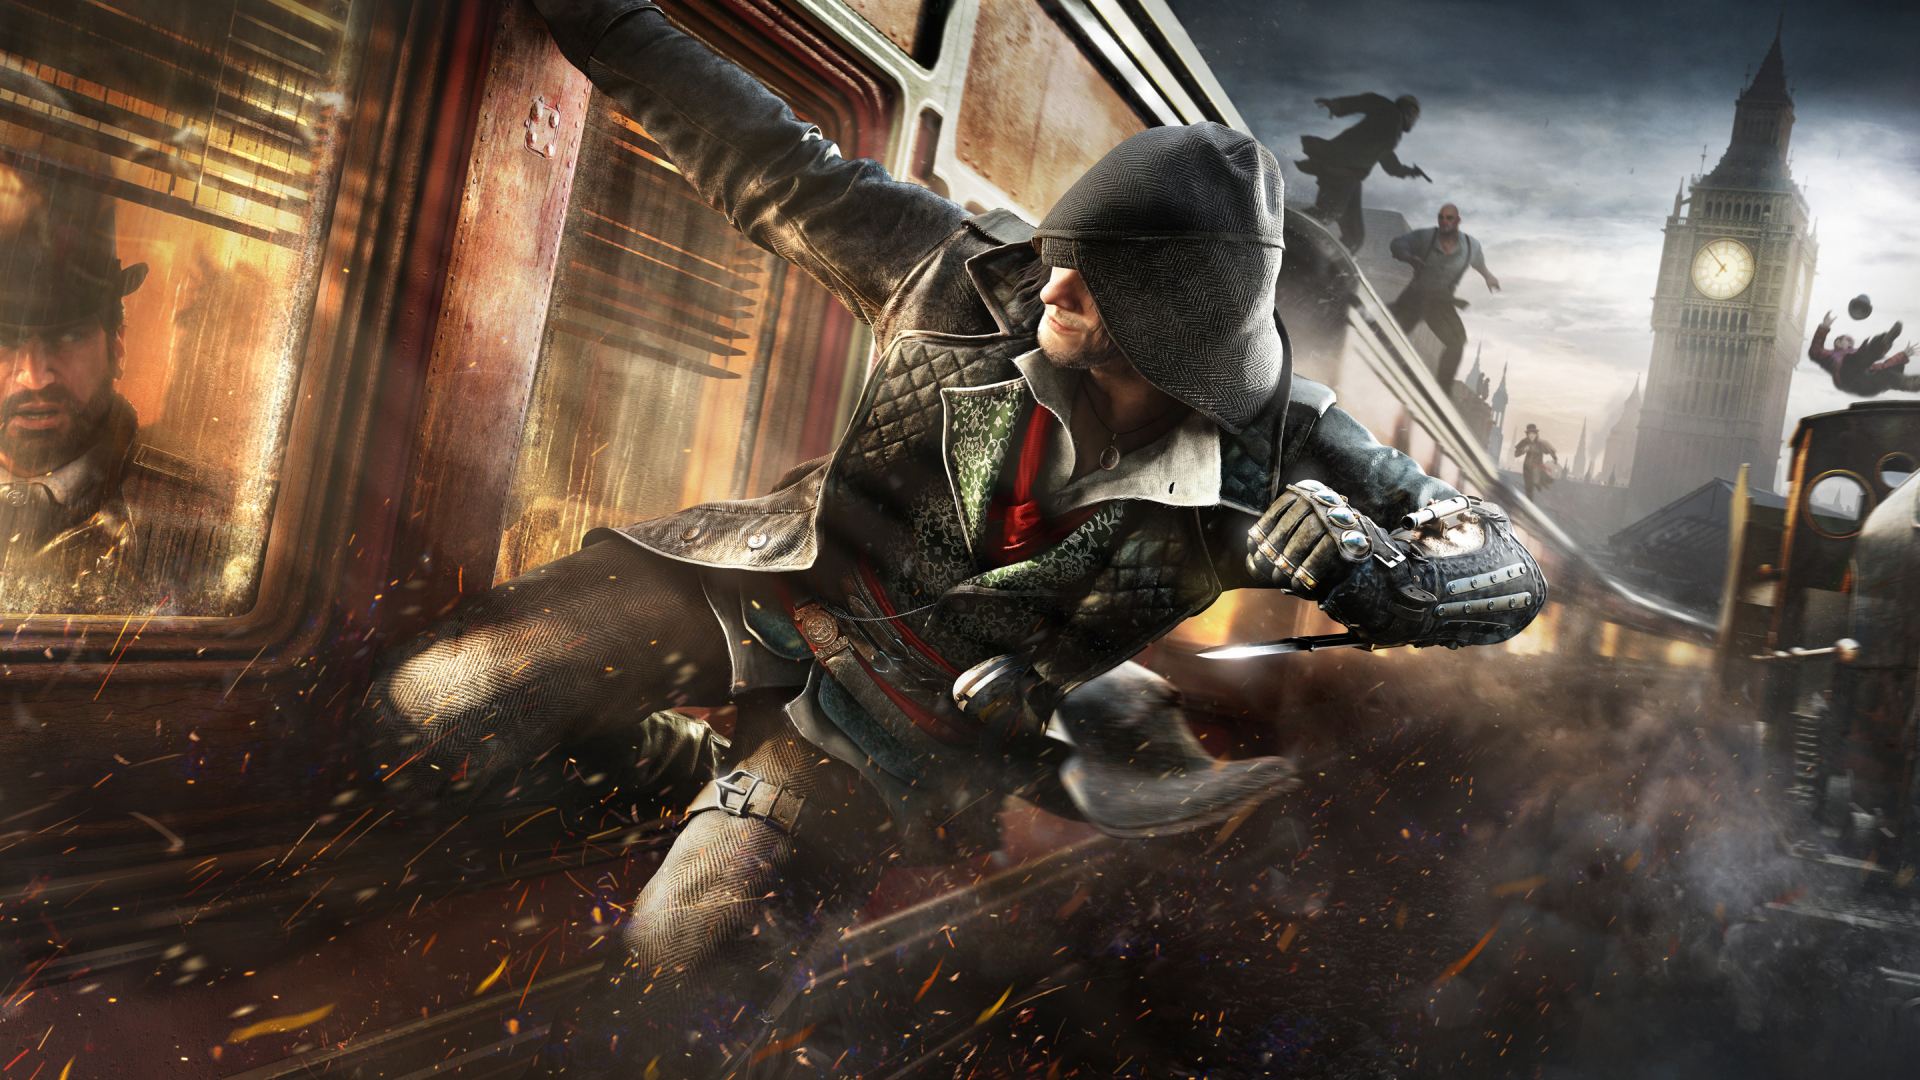 Free Download Assassins Creed Syndicate Hd Wallpapers Download